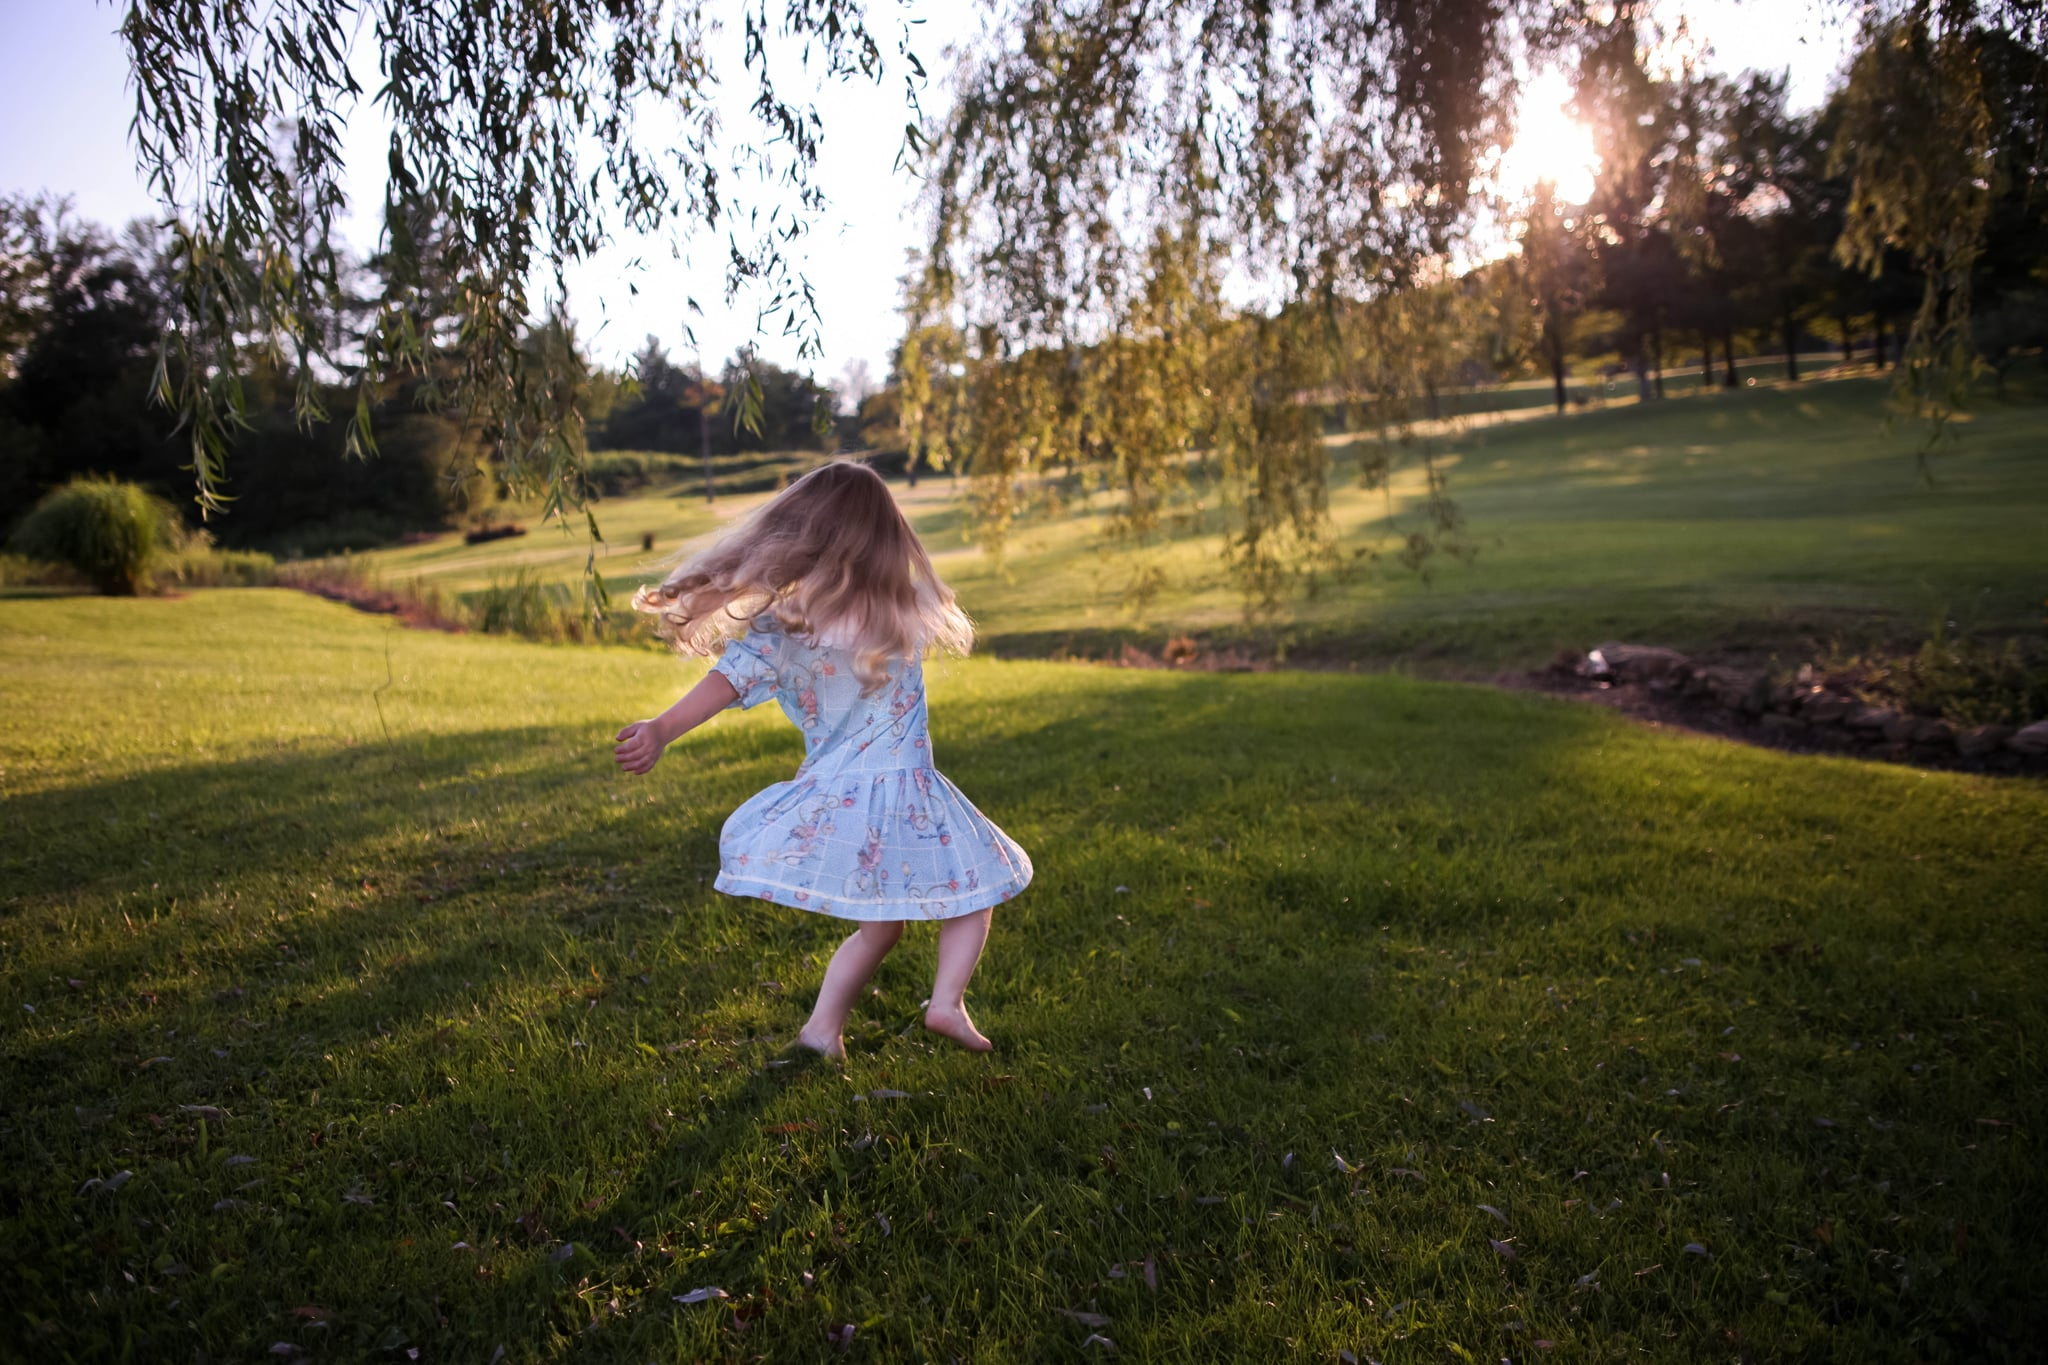 40 Life Lessons on Happiness That I Want My Daughter to Learn